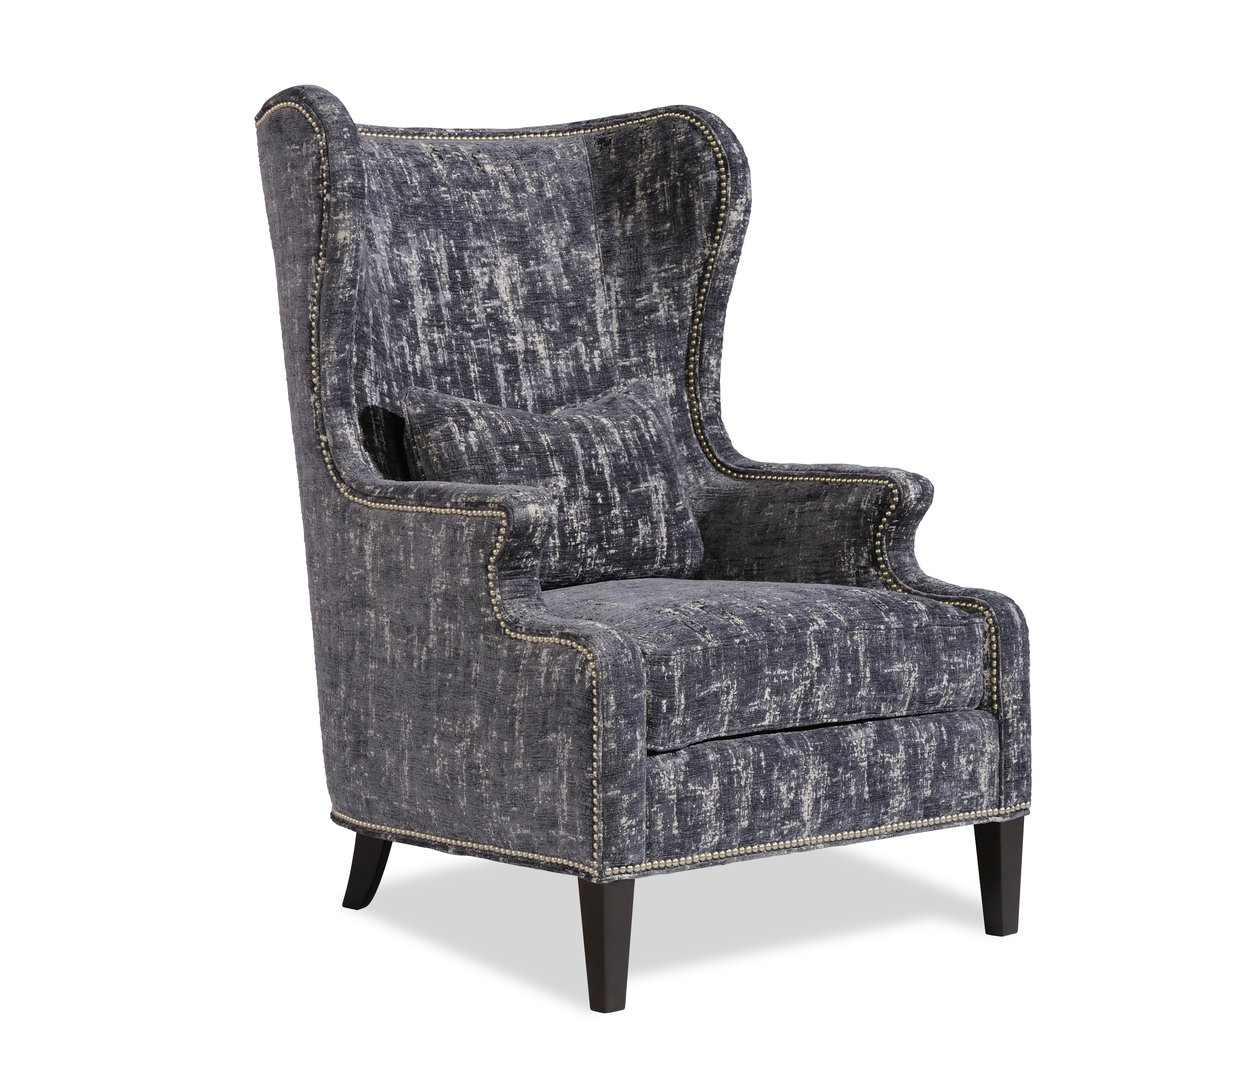 Voltaire chair Image